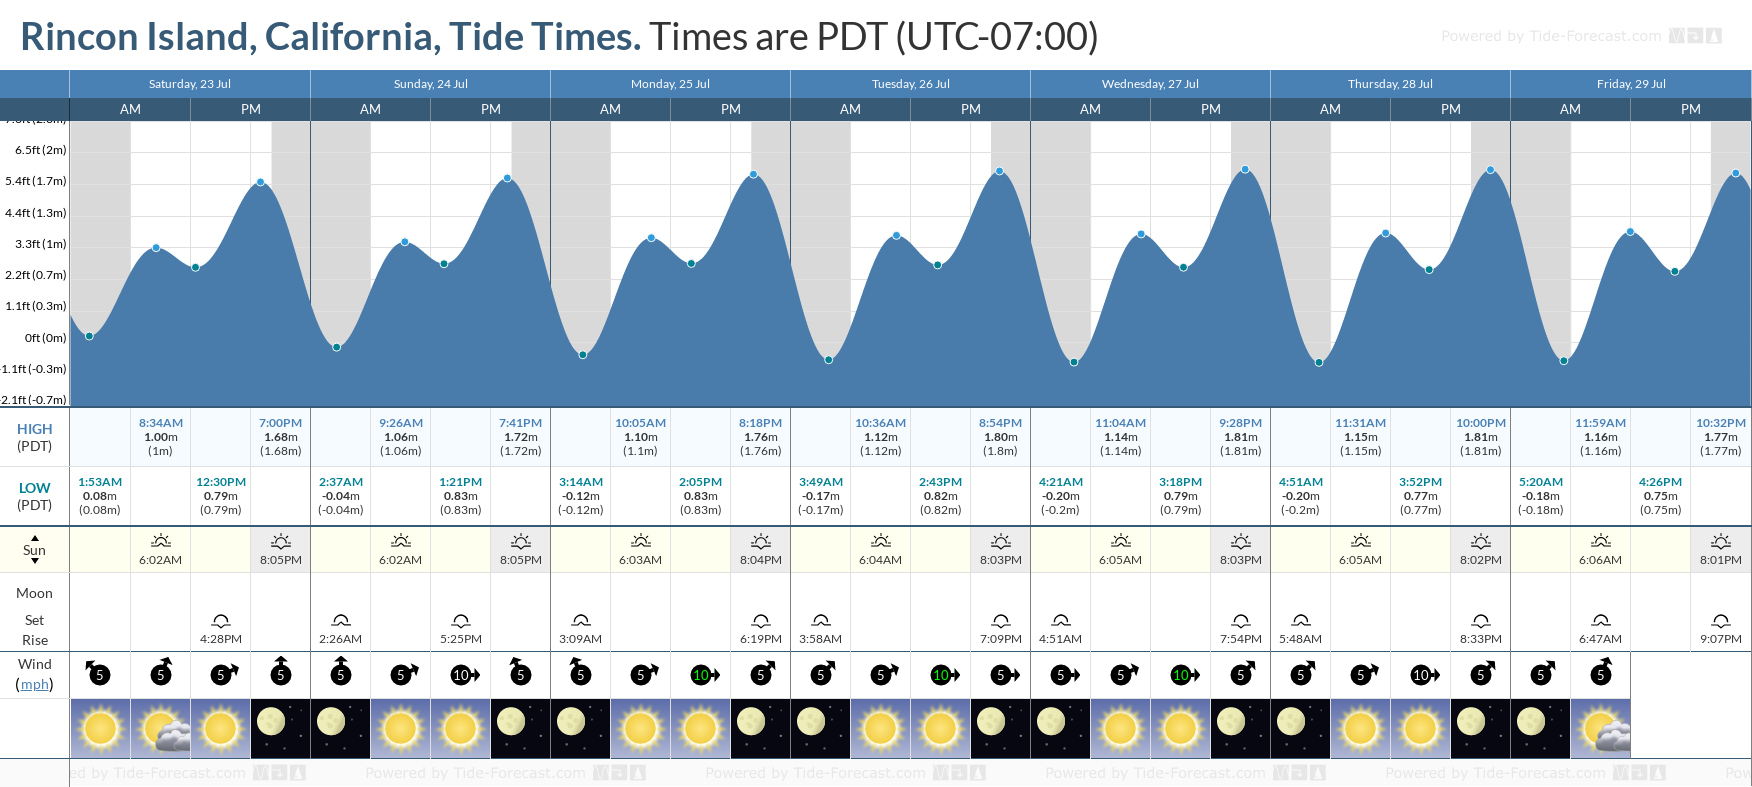 Rincon Island, California Tide Chart including high and low tide tide times for the next 7 days